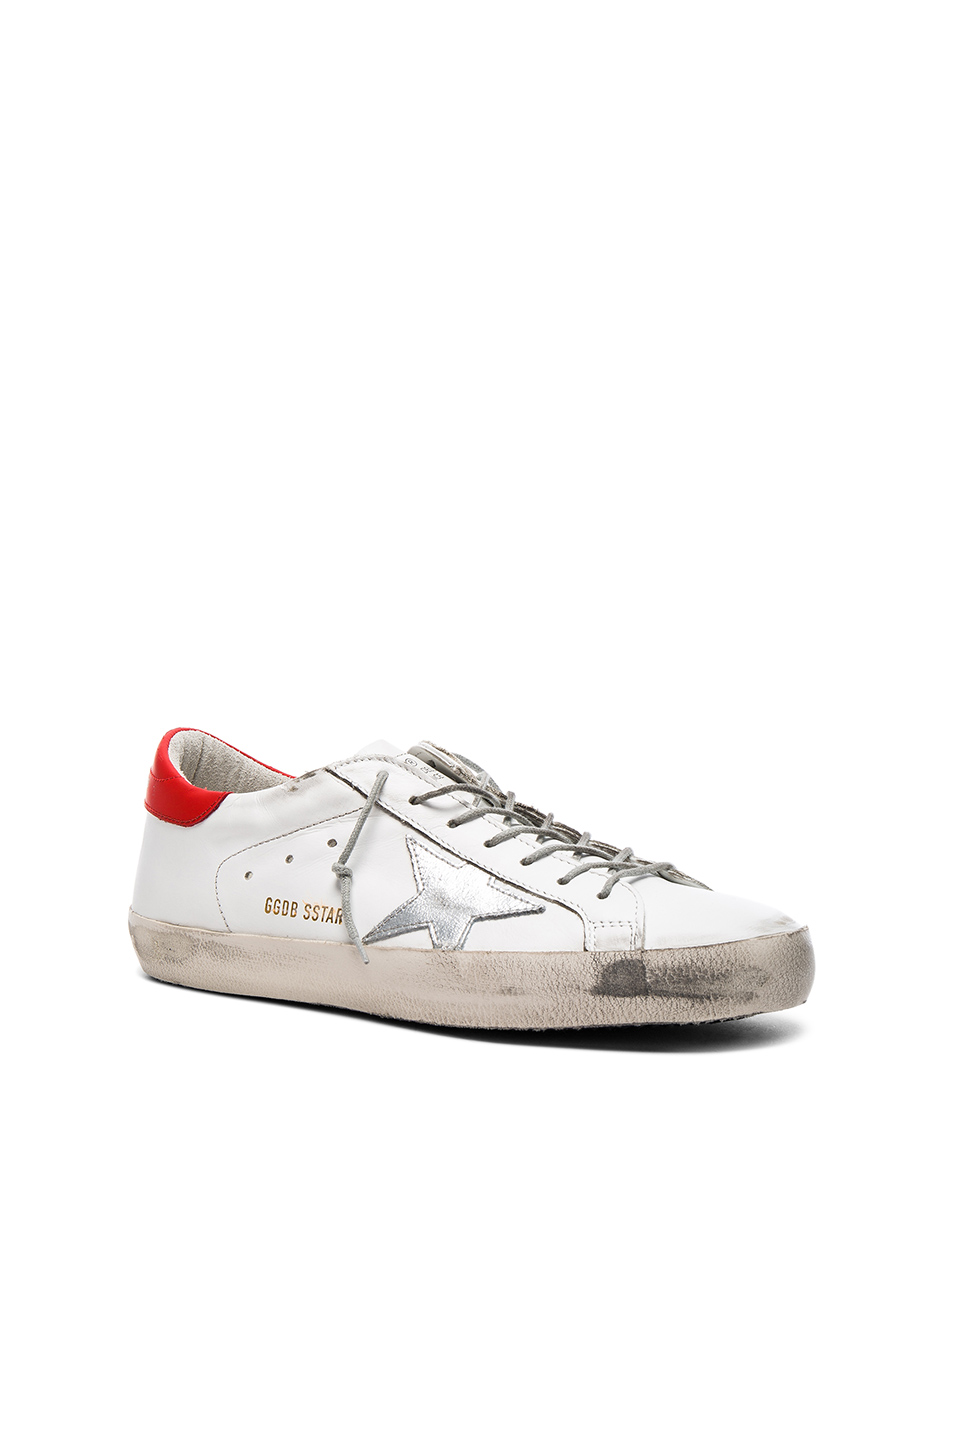 Photo of Golden Goose Leather Superstar Low Sneakers in White - shop Golden Goose menswear